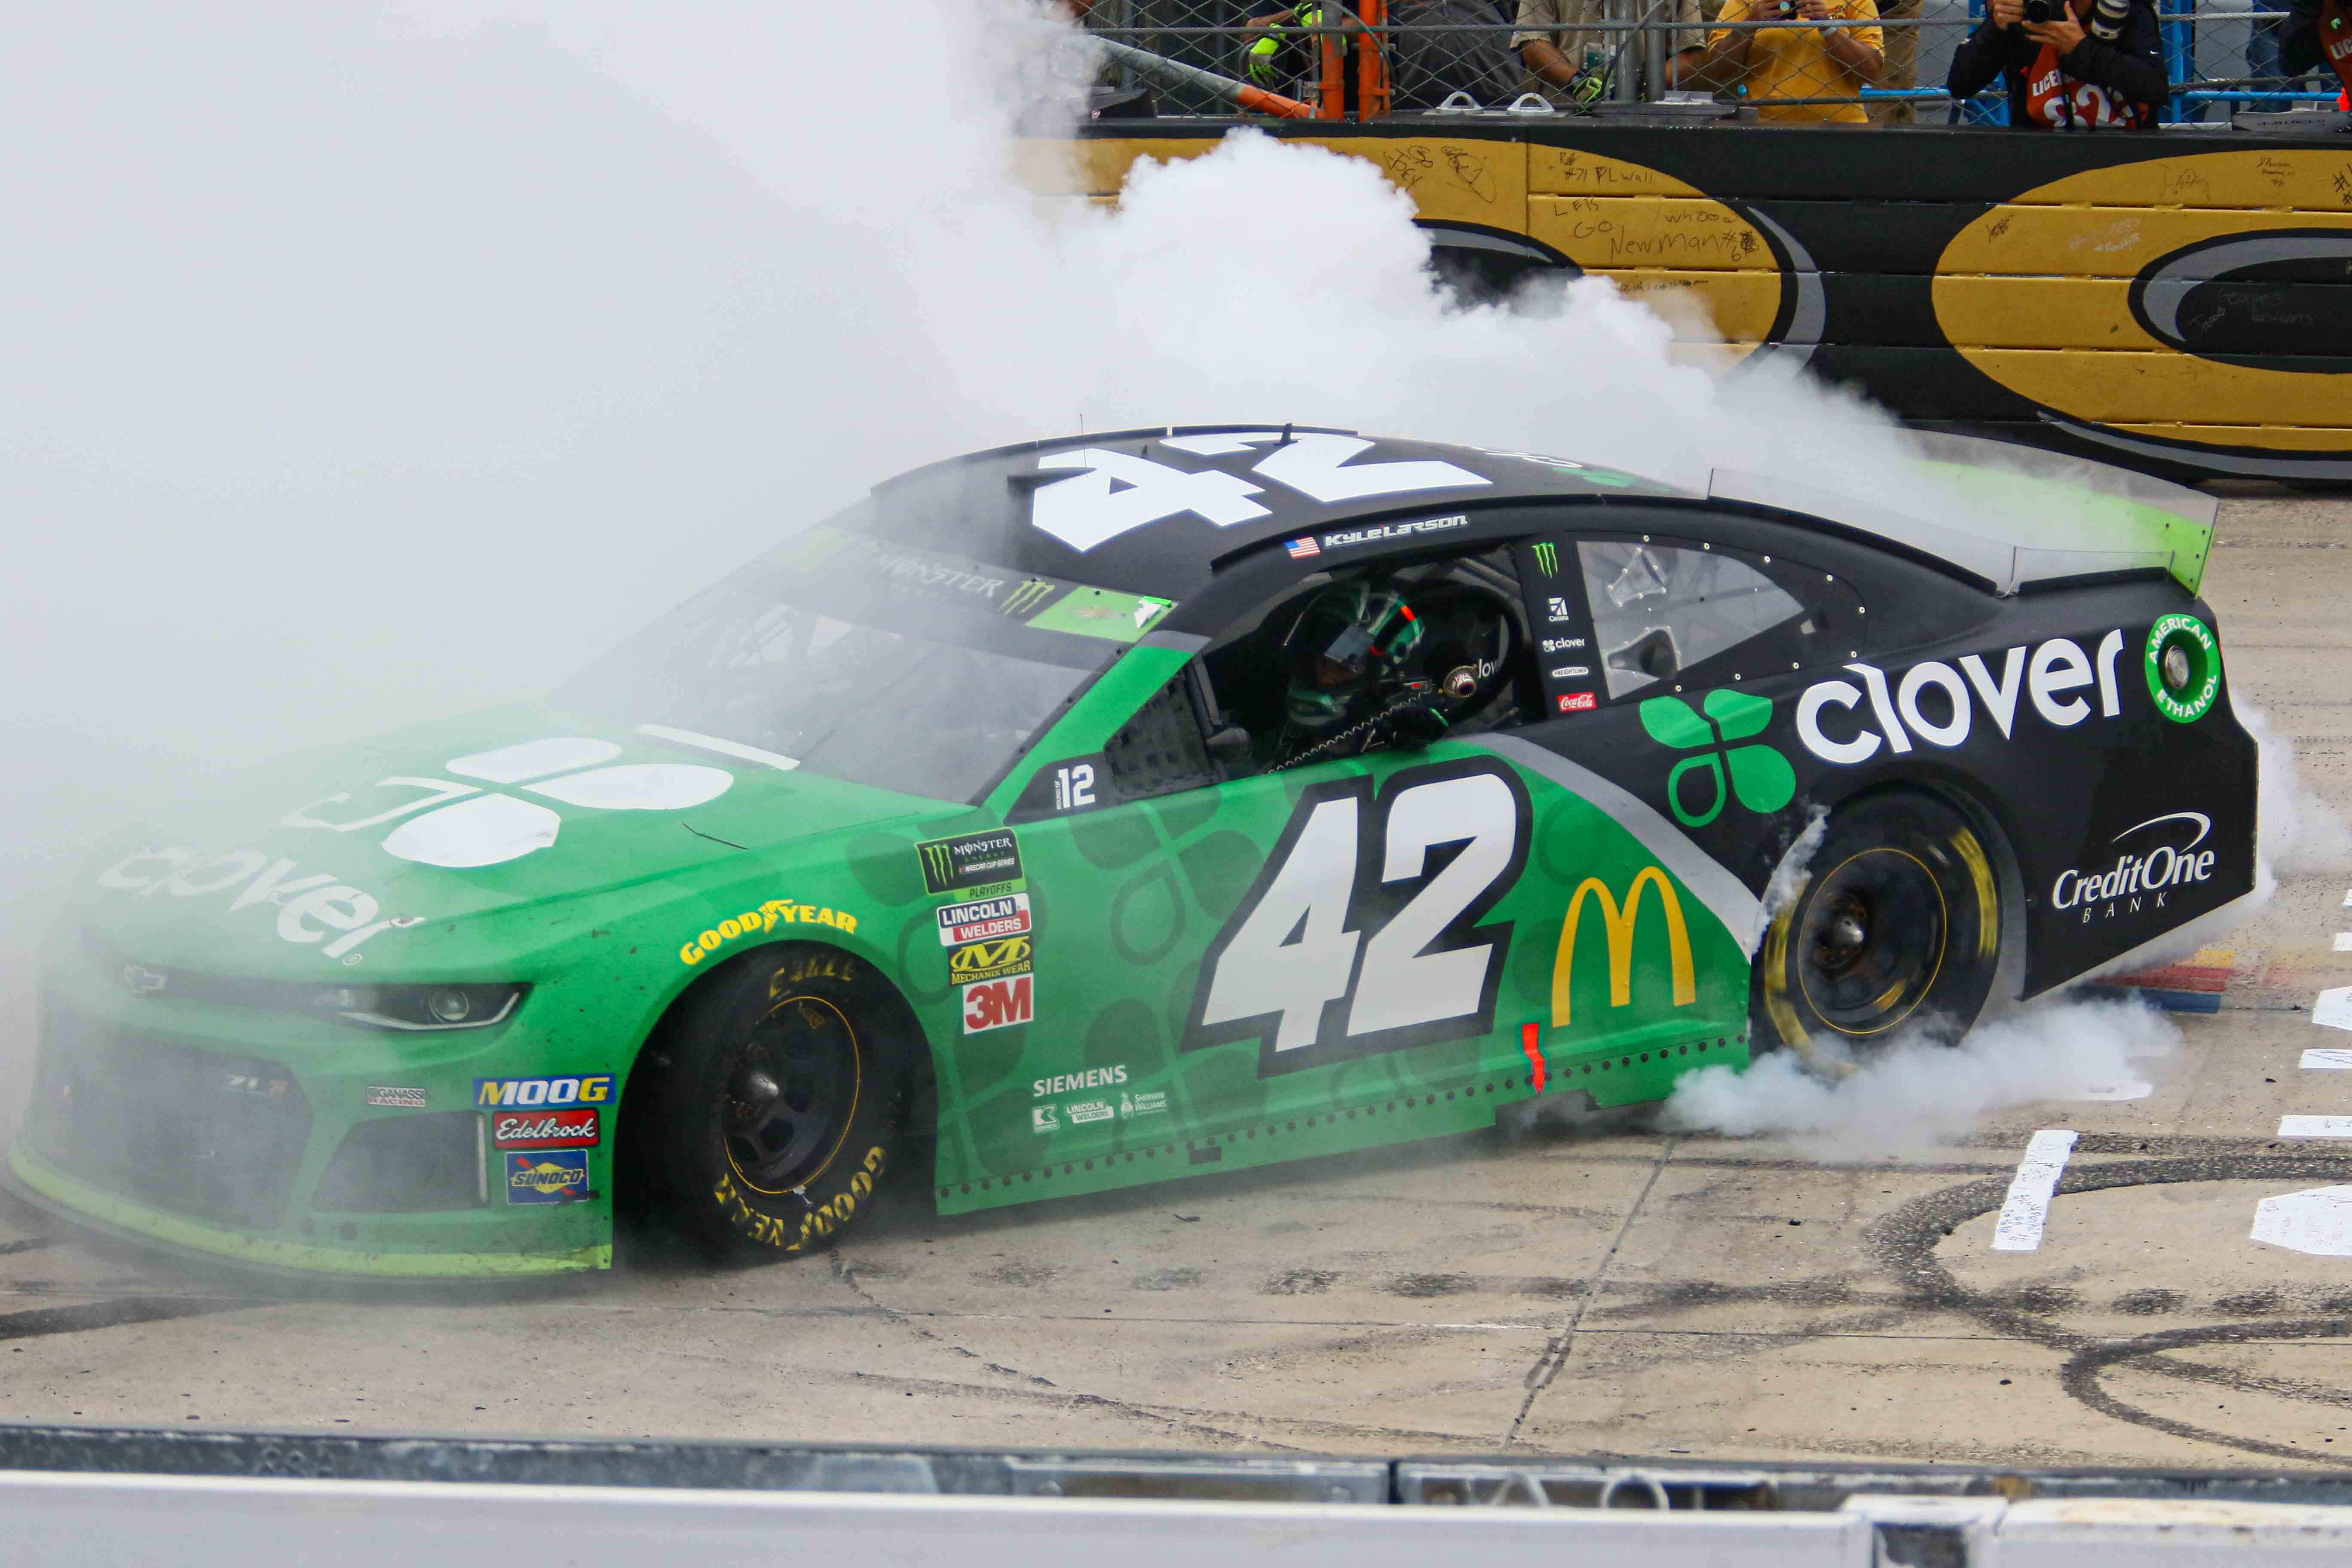 KYLE LARSON (42) of Chip Ganassi Racing wins the monster energy 400